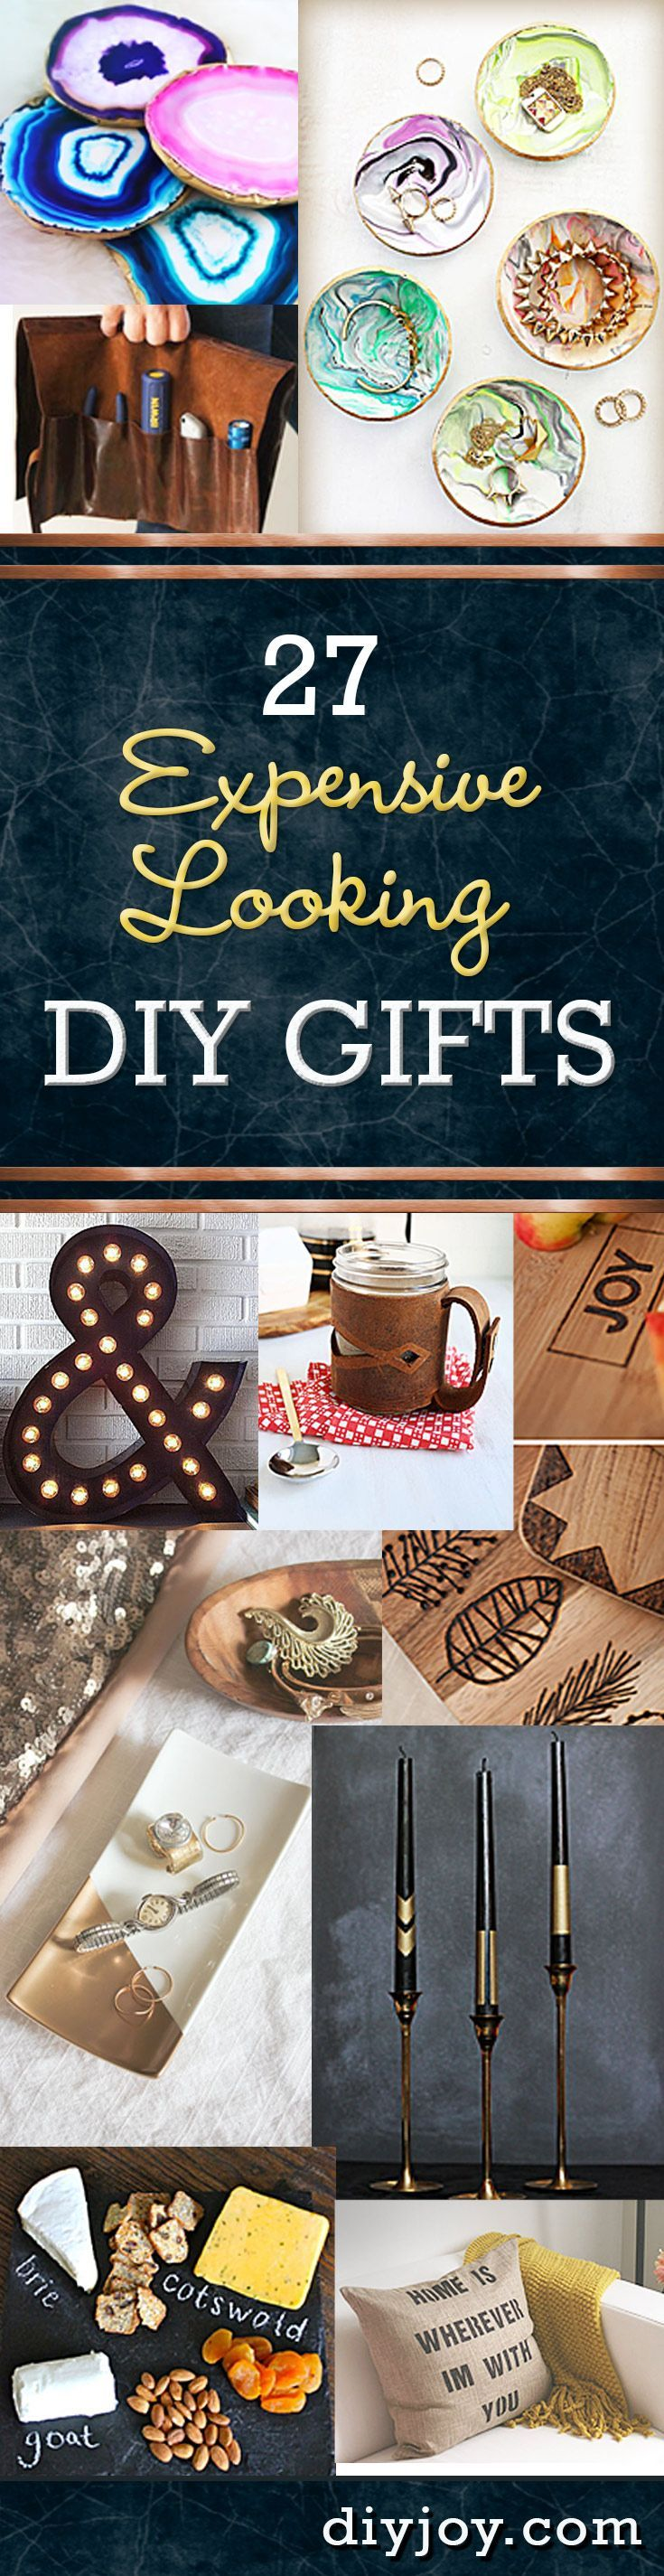 Inexpensive DIY Gifts And Creative Crafts Projects That Make Cool Gift Ideas CHEAP More Expensive Looking Cheap Birthday